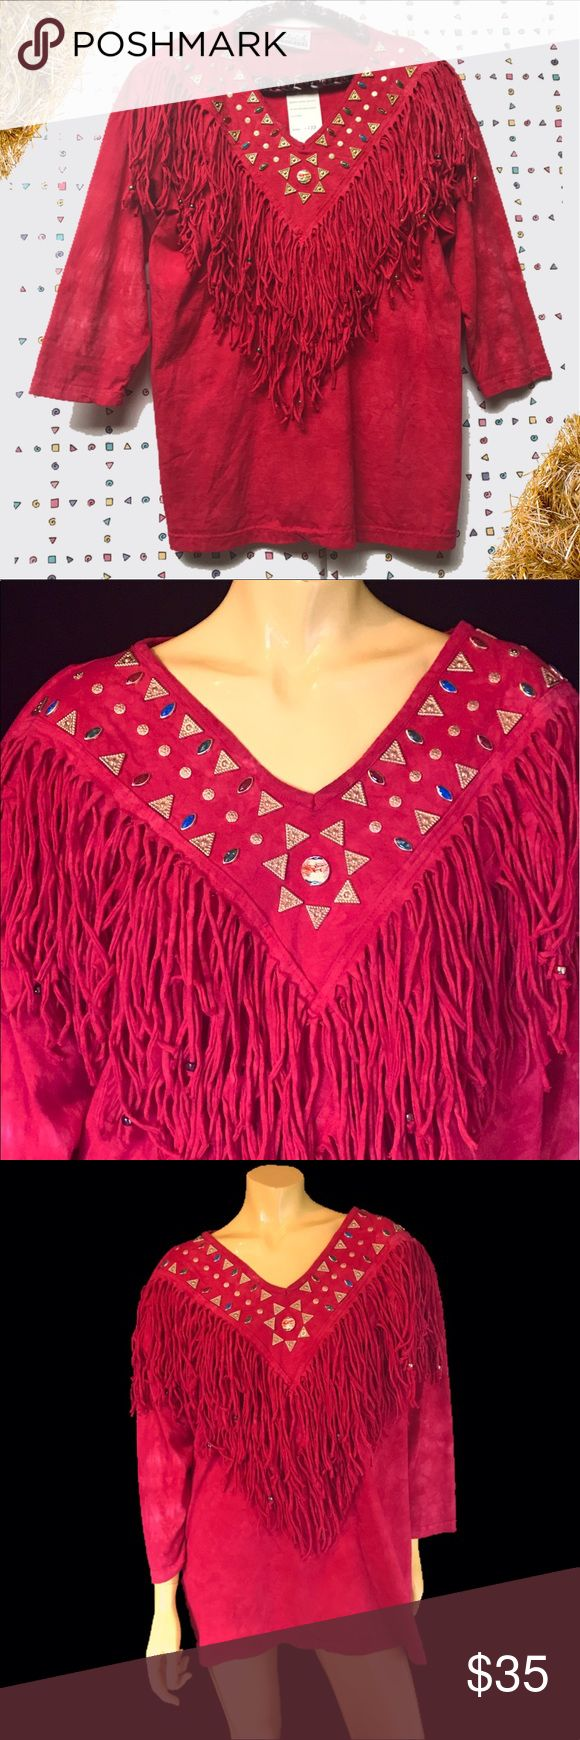 "•♦️👹 80s Western Embellished Fringe Shirt 👹♦️• Fringe on fringe ‼️❣️ This lioness of a neckline is bedazzled to high haystack heavens with textured teal red and gold triangular studs ⭐️🔸🏵 . • Shileh Artwear • 💯% Cotton • Made in U.S.A 🇺🇸 • M • Fit L - XL • . • Bust: 46"" - 50"" • • Waist: 46"" - 50"" • • Length: 29"" • • Shoulder: 25"" • • Sleeve: 16"" • . . . • * • . • ✶ • . • * •. #vintage #vtg #retro #1980 #1980s #80s #80 #wild #western #westernwear #funky #beaded #fringe #bedazzled…"